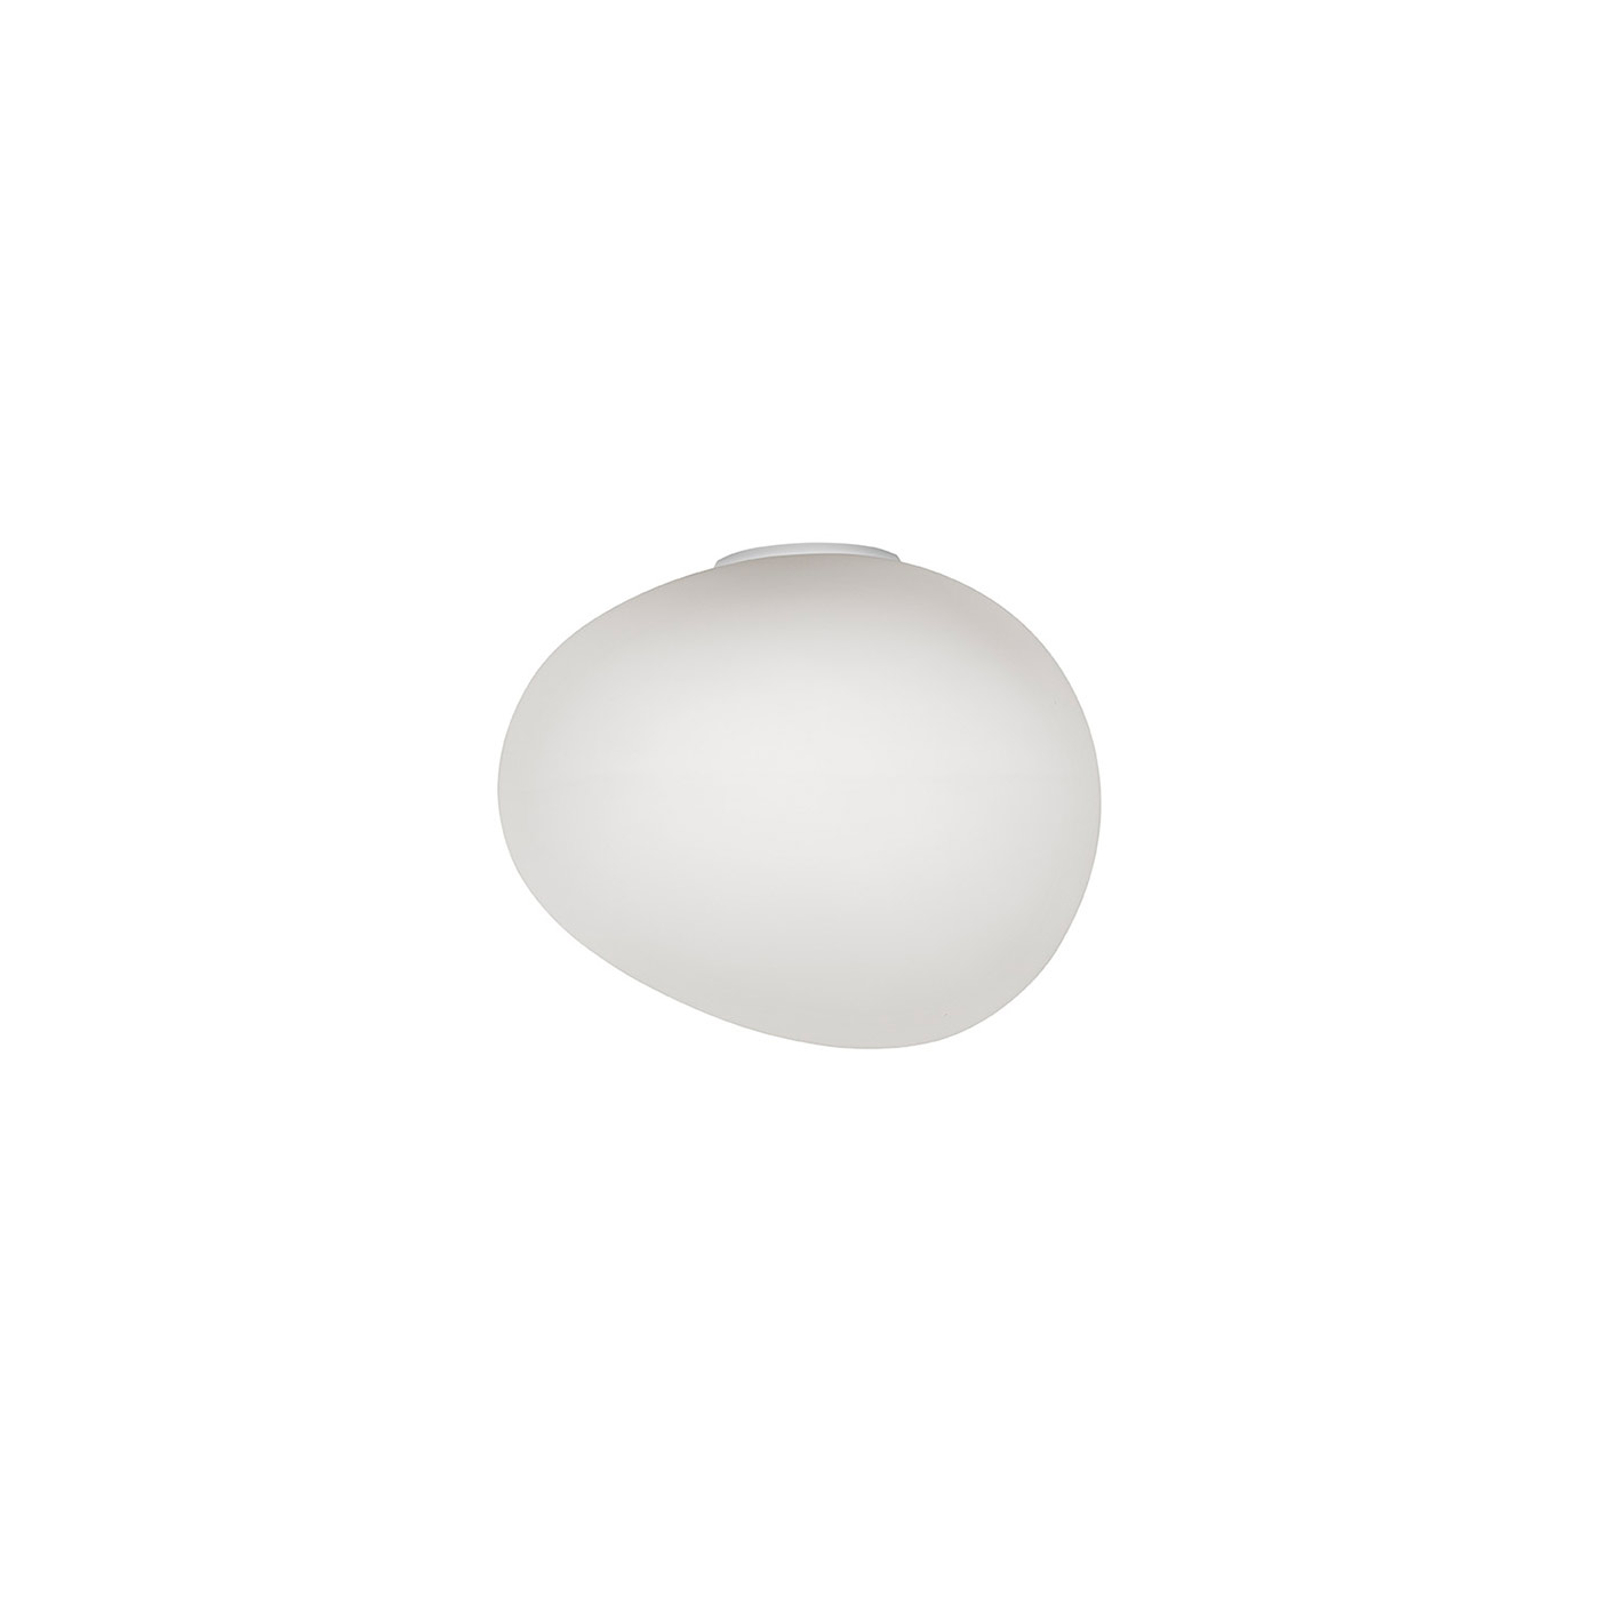 Foscarini Gregg media semi 1 applique, blanche